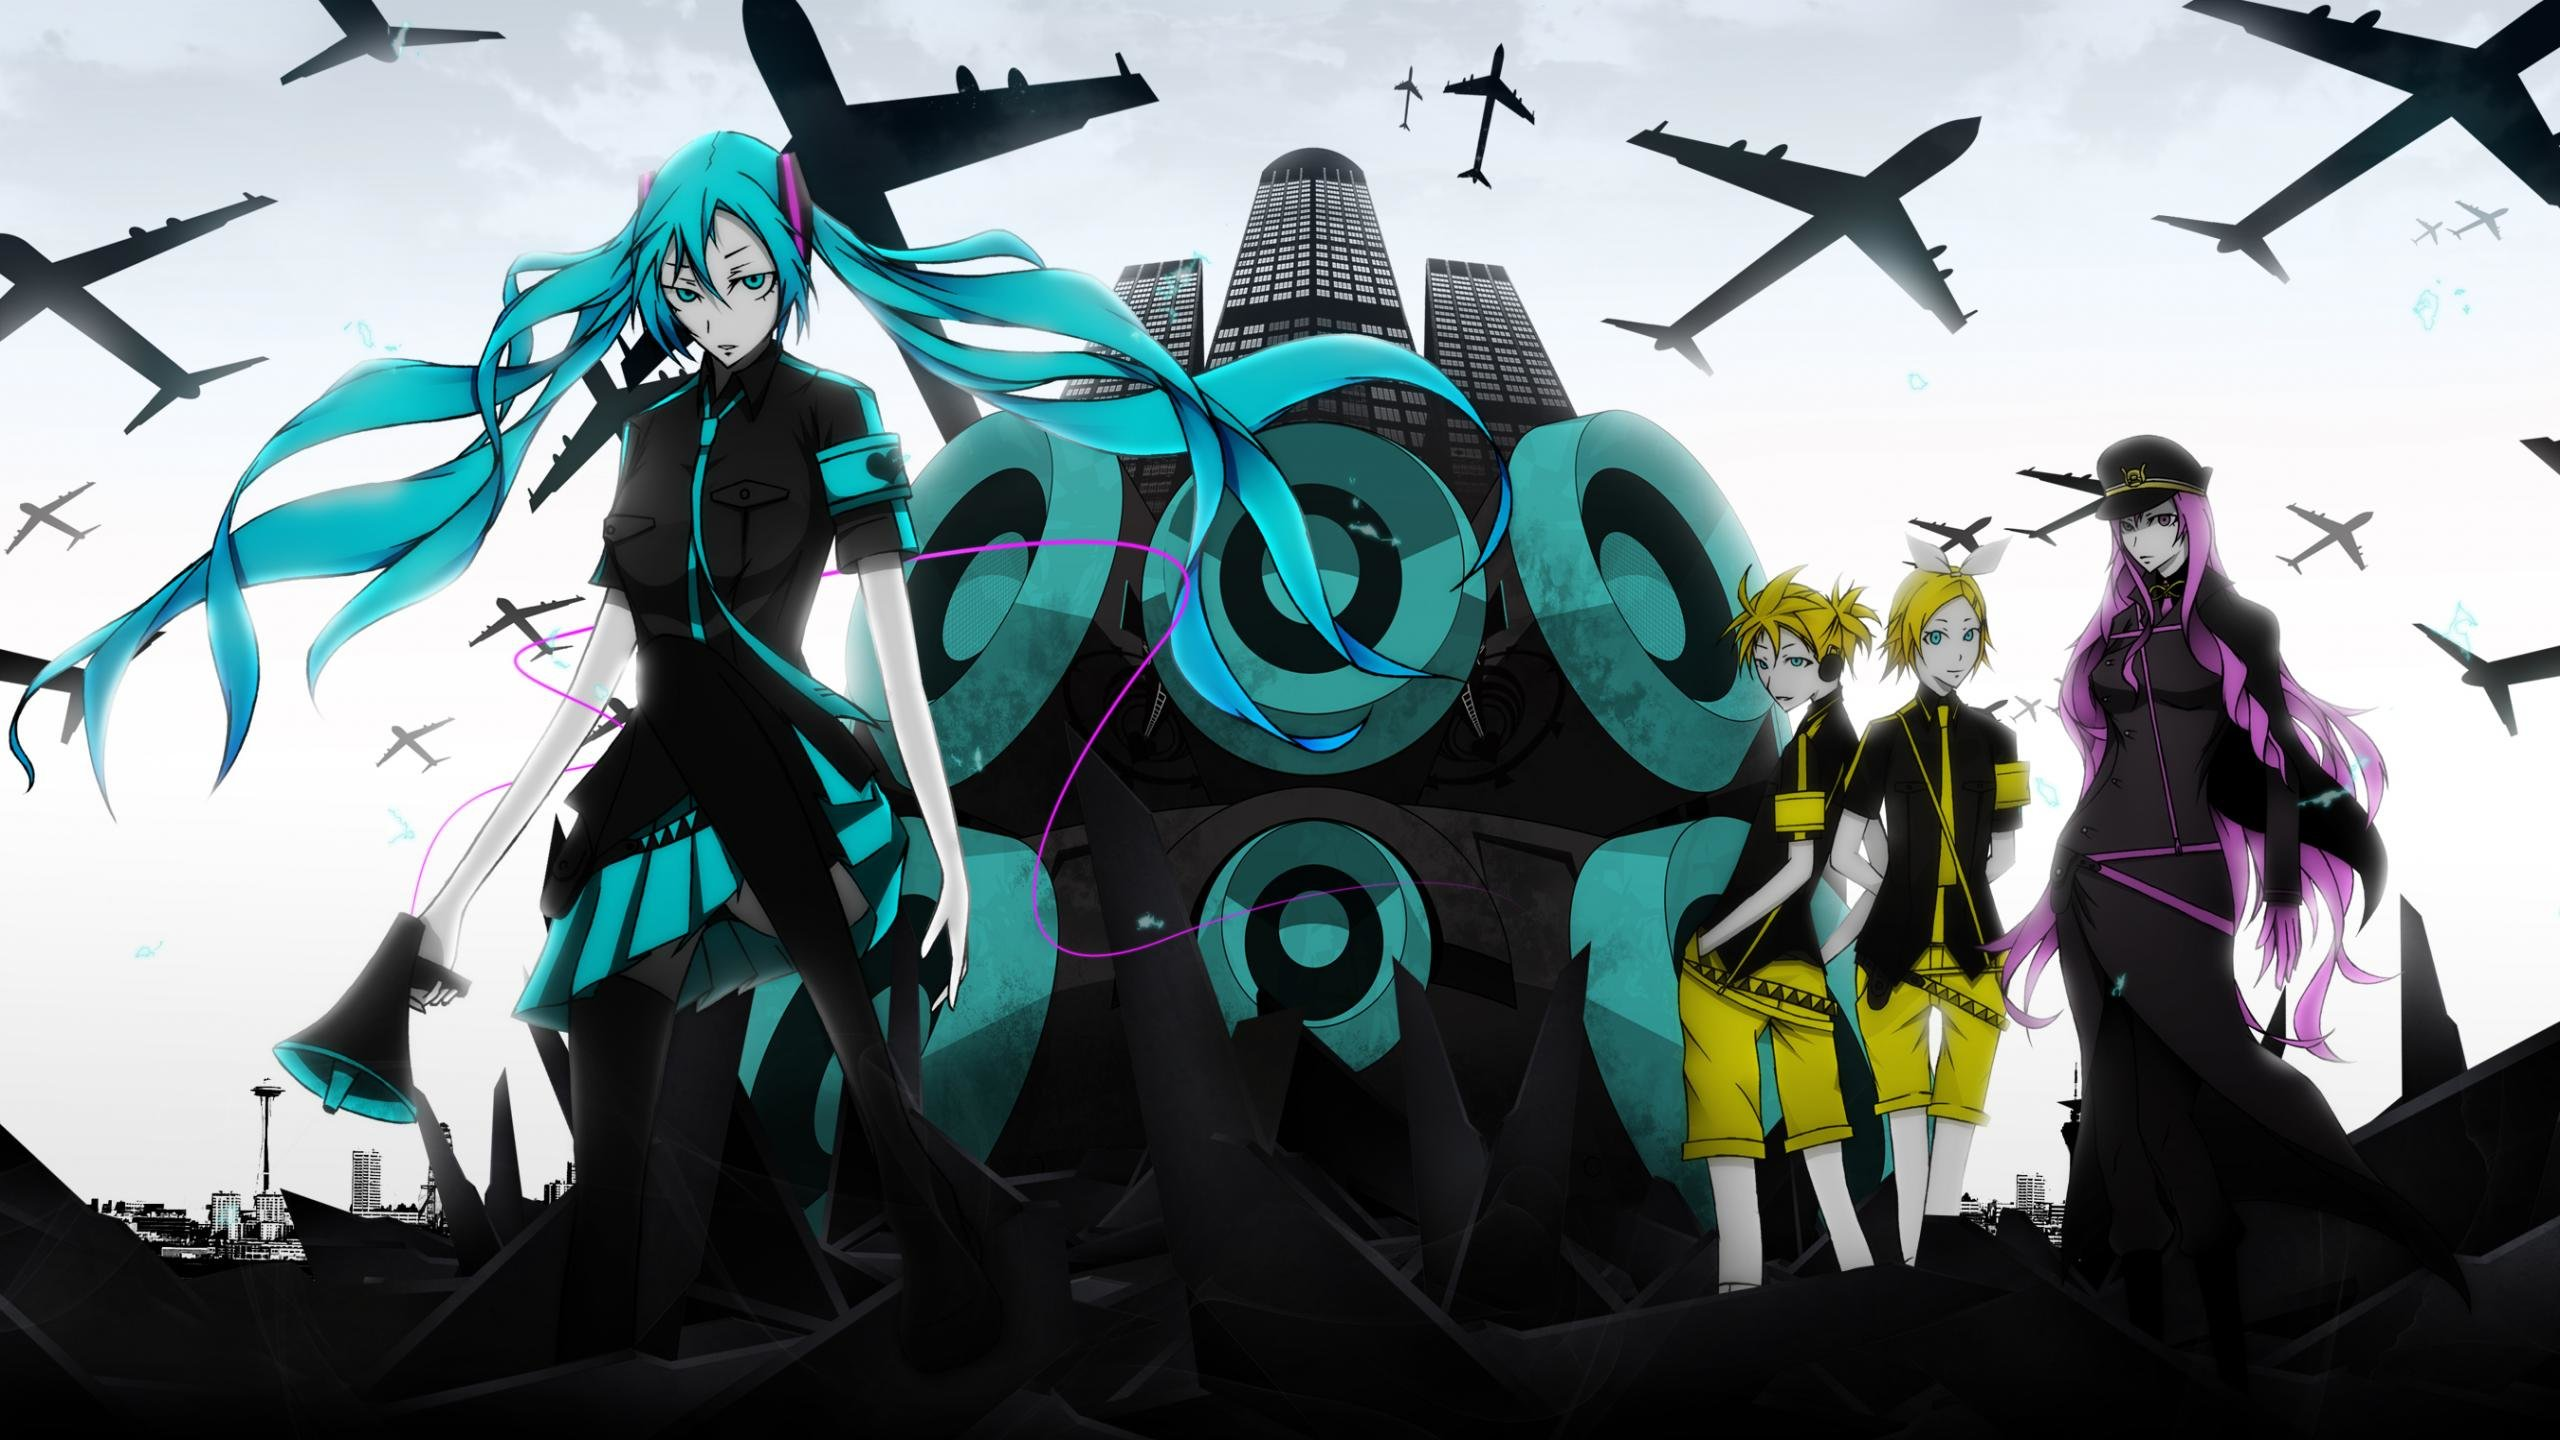 Download hd 2560x1440 Vocaloid computer wallpaper ID:2635 for free